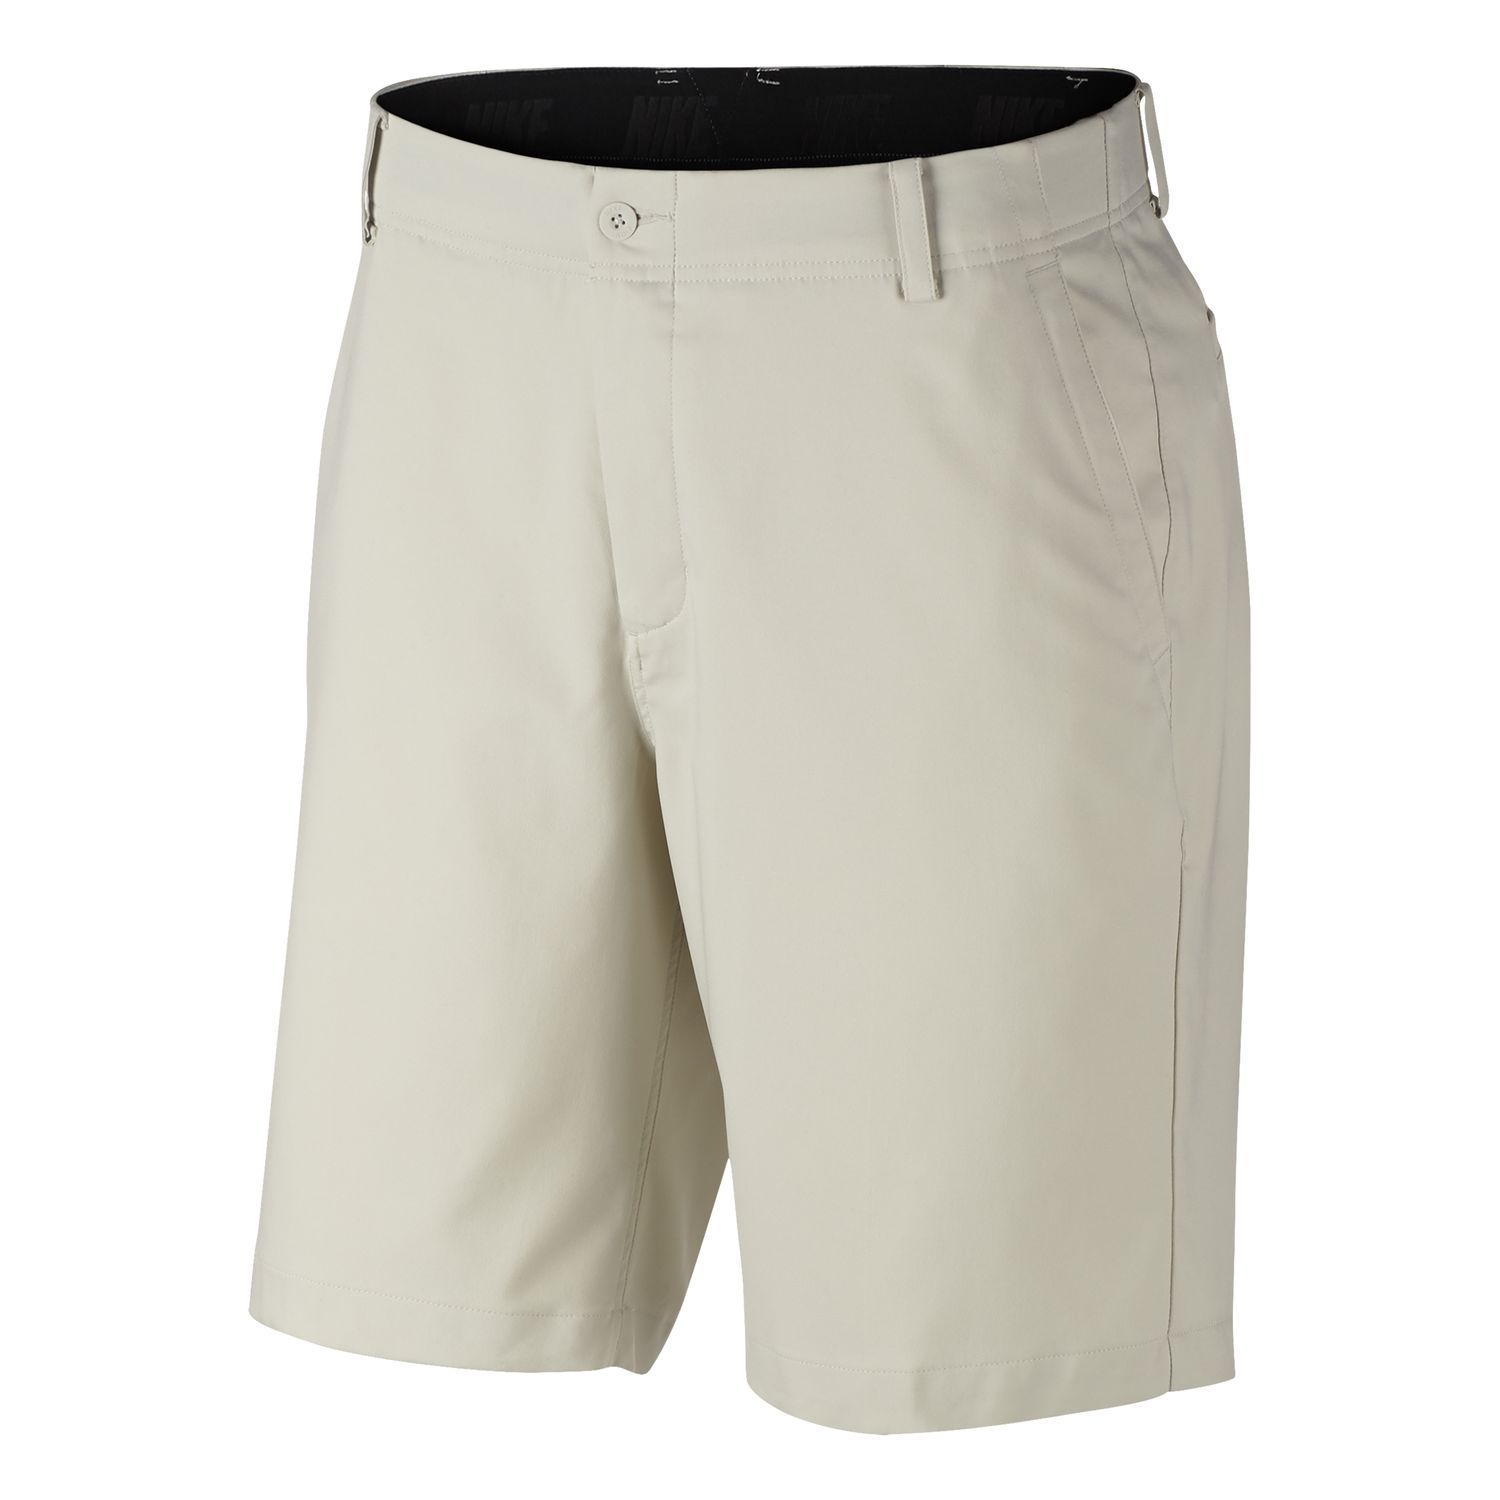 Men\u0027s Nike Dri-FIT Flex Stretch Golf Shorts